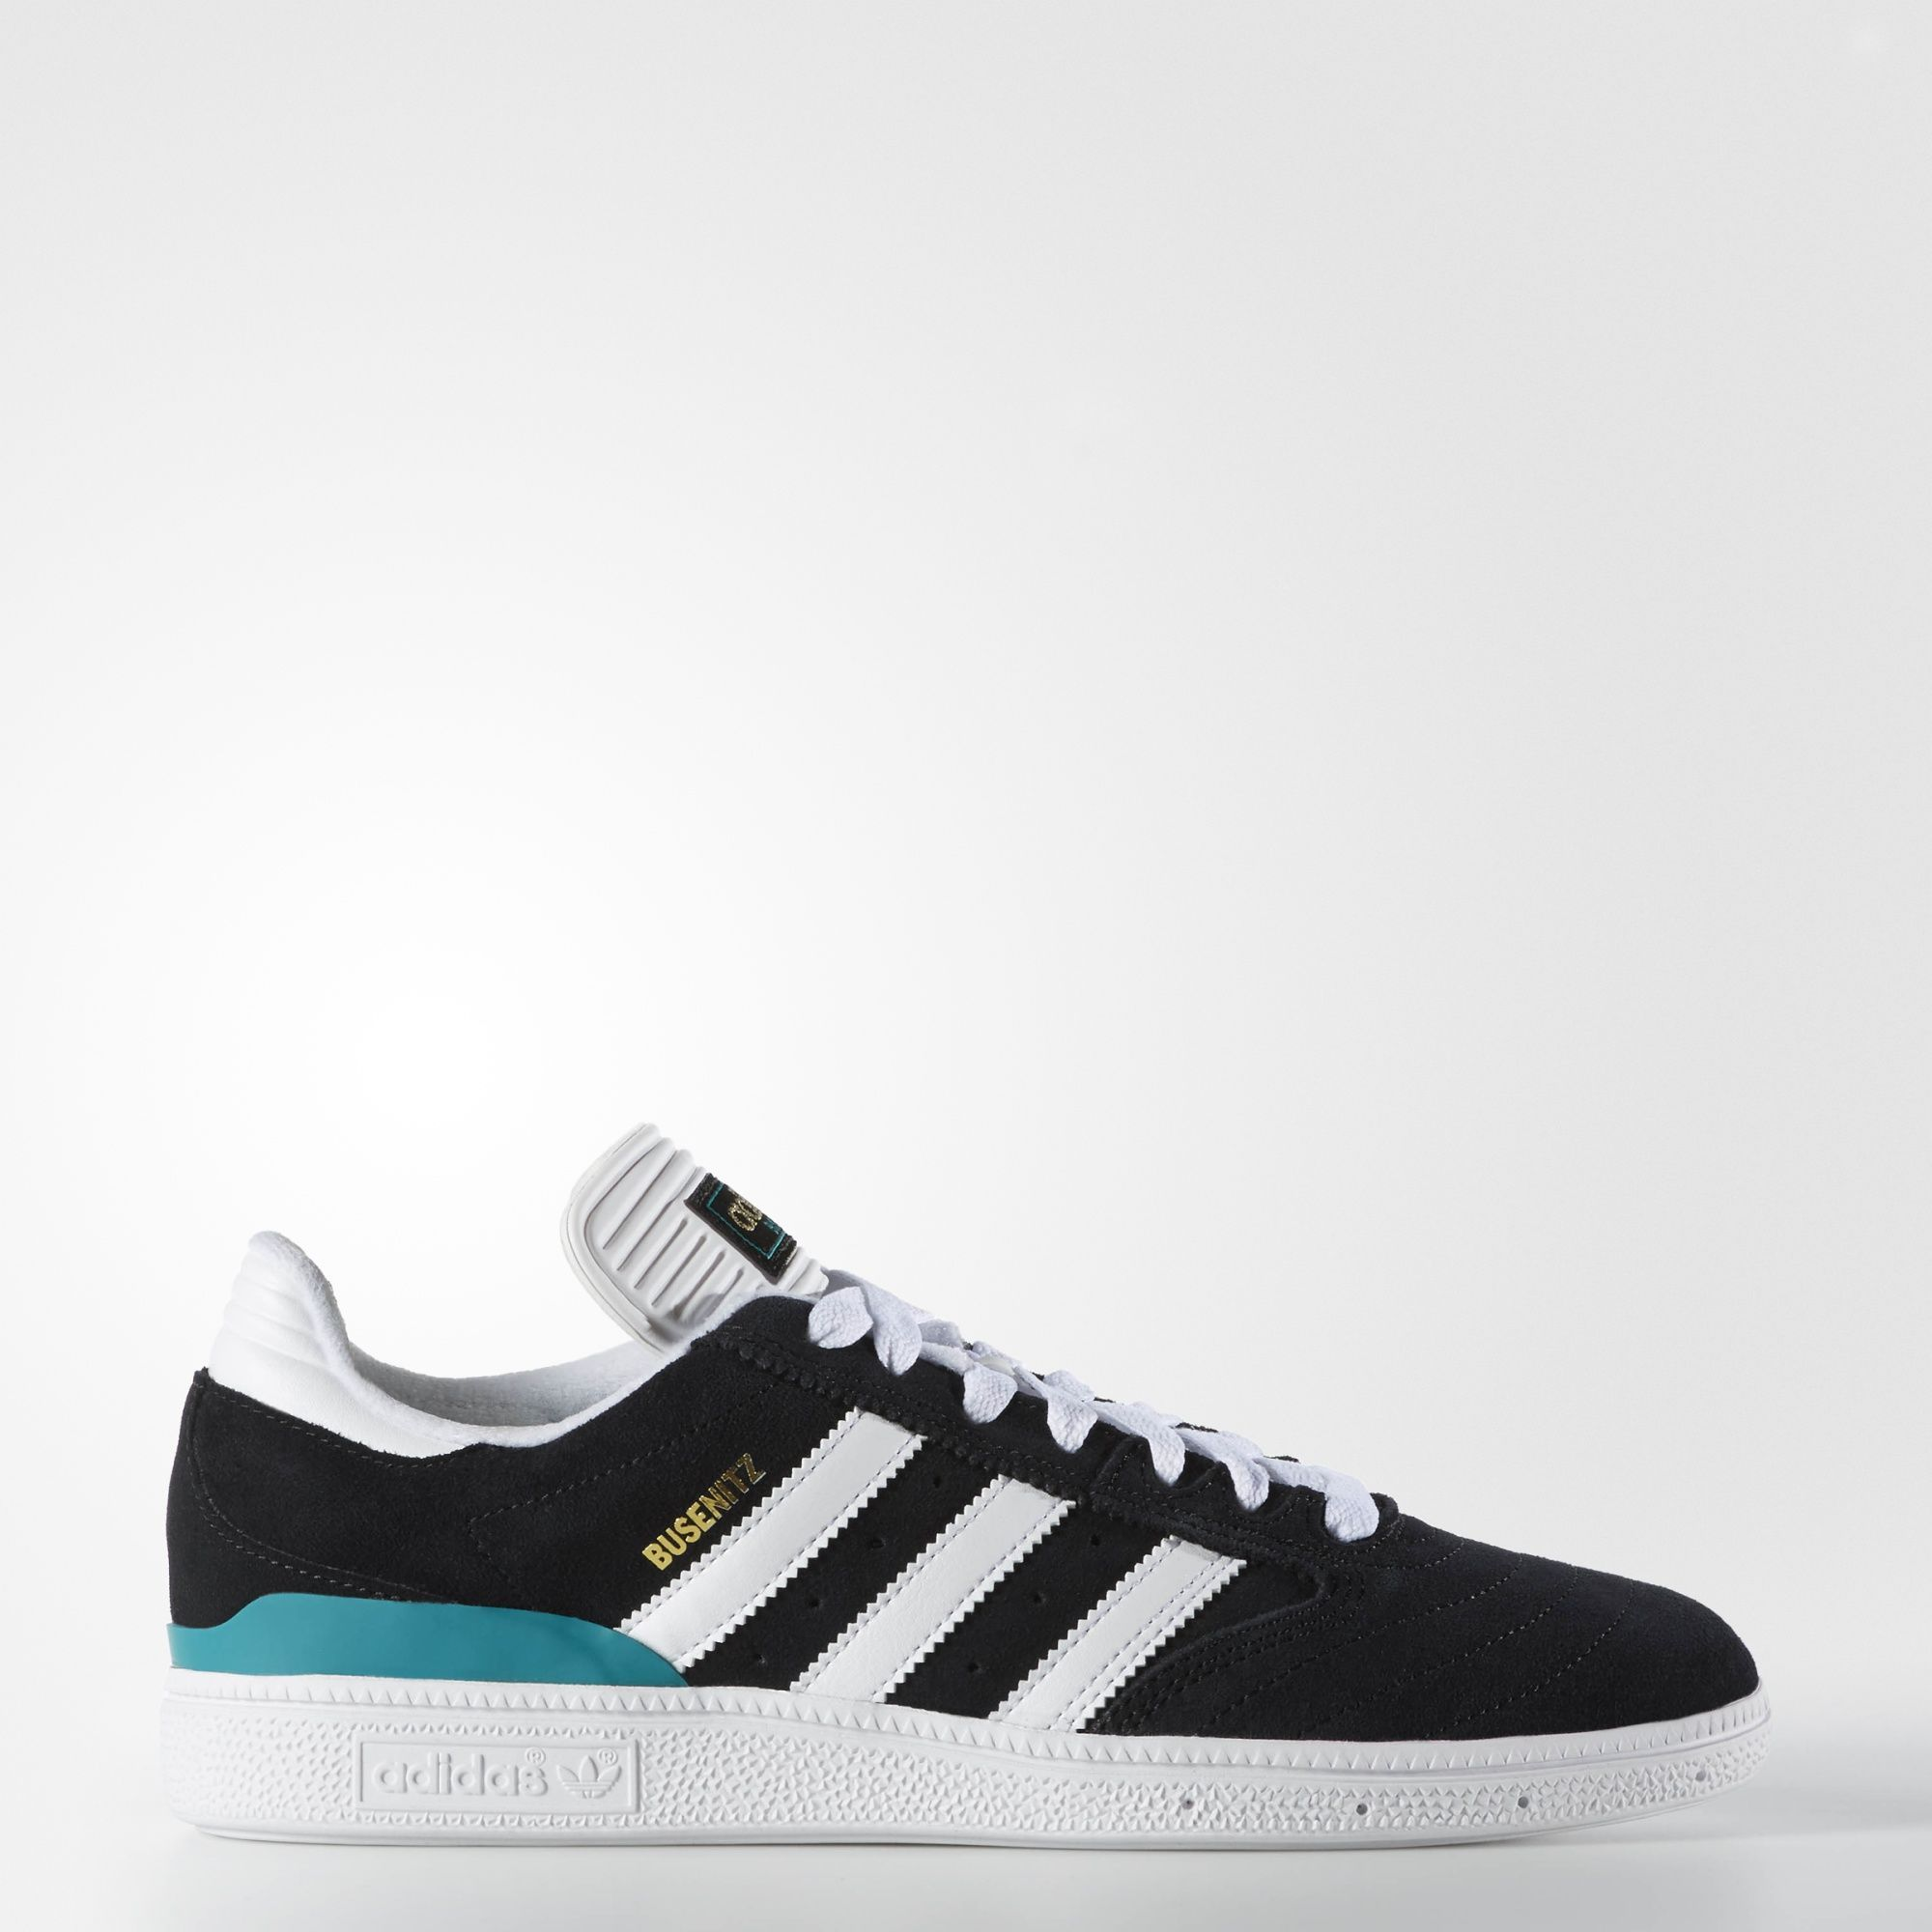 Find your adidas Men, Originals, Shoes at adidas. All styles and colours  available in the official adidas online store.